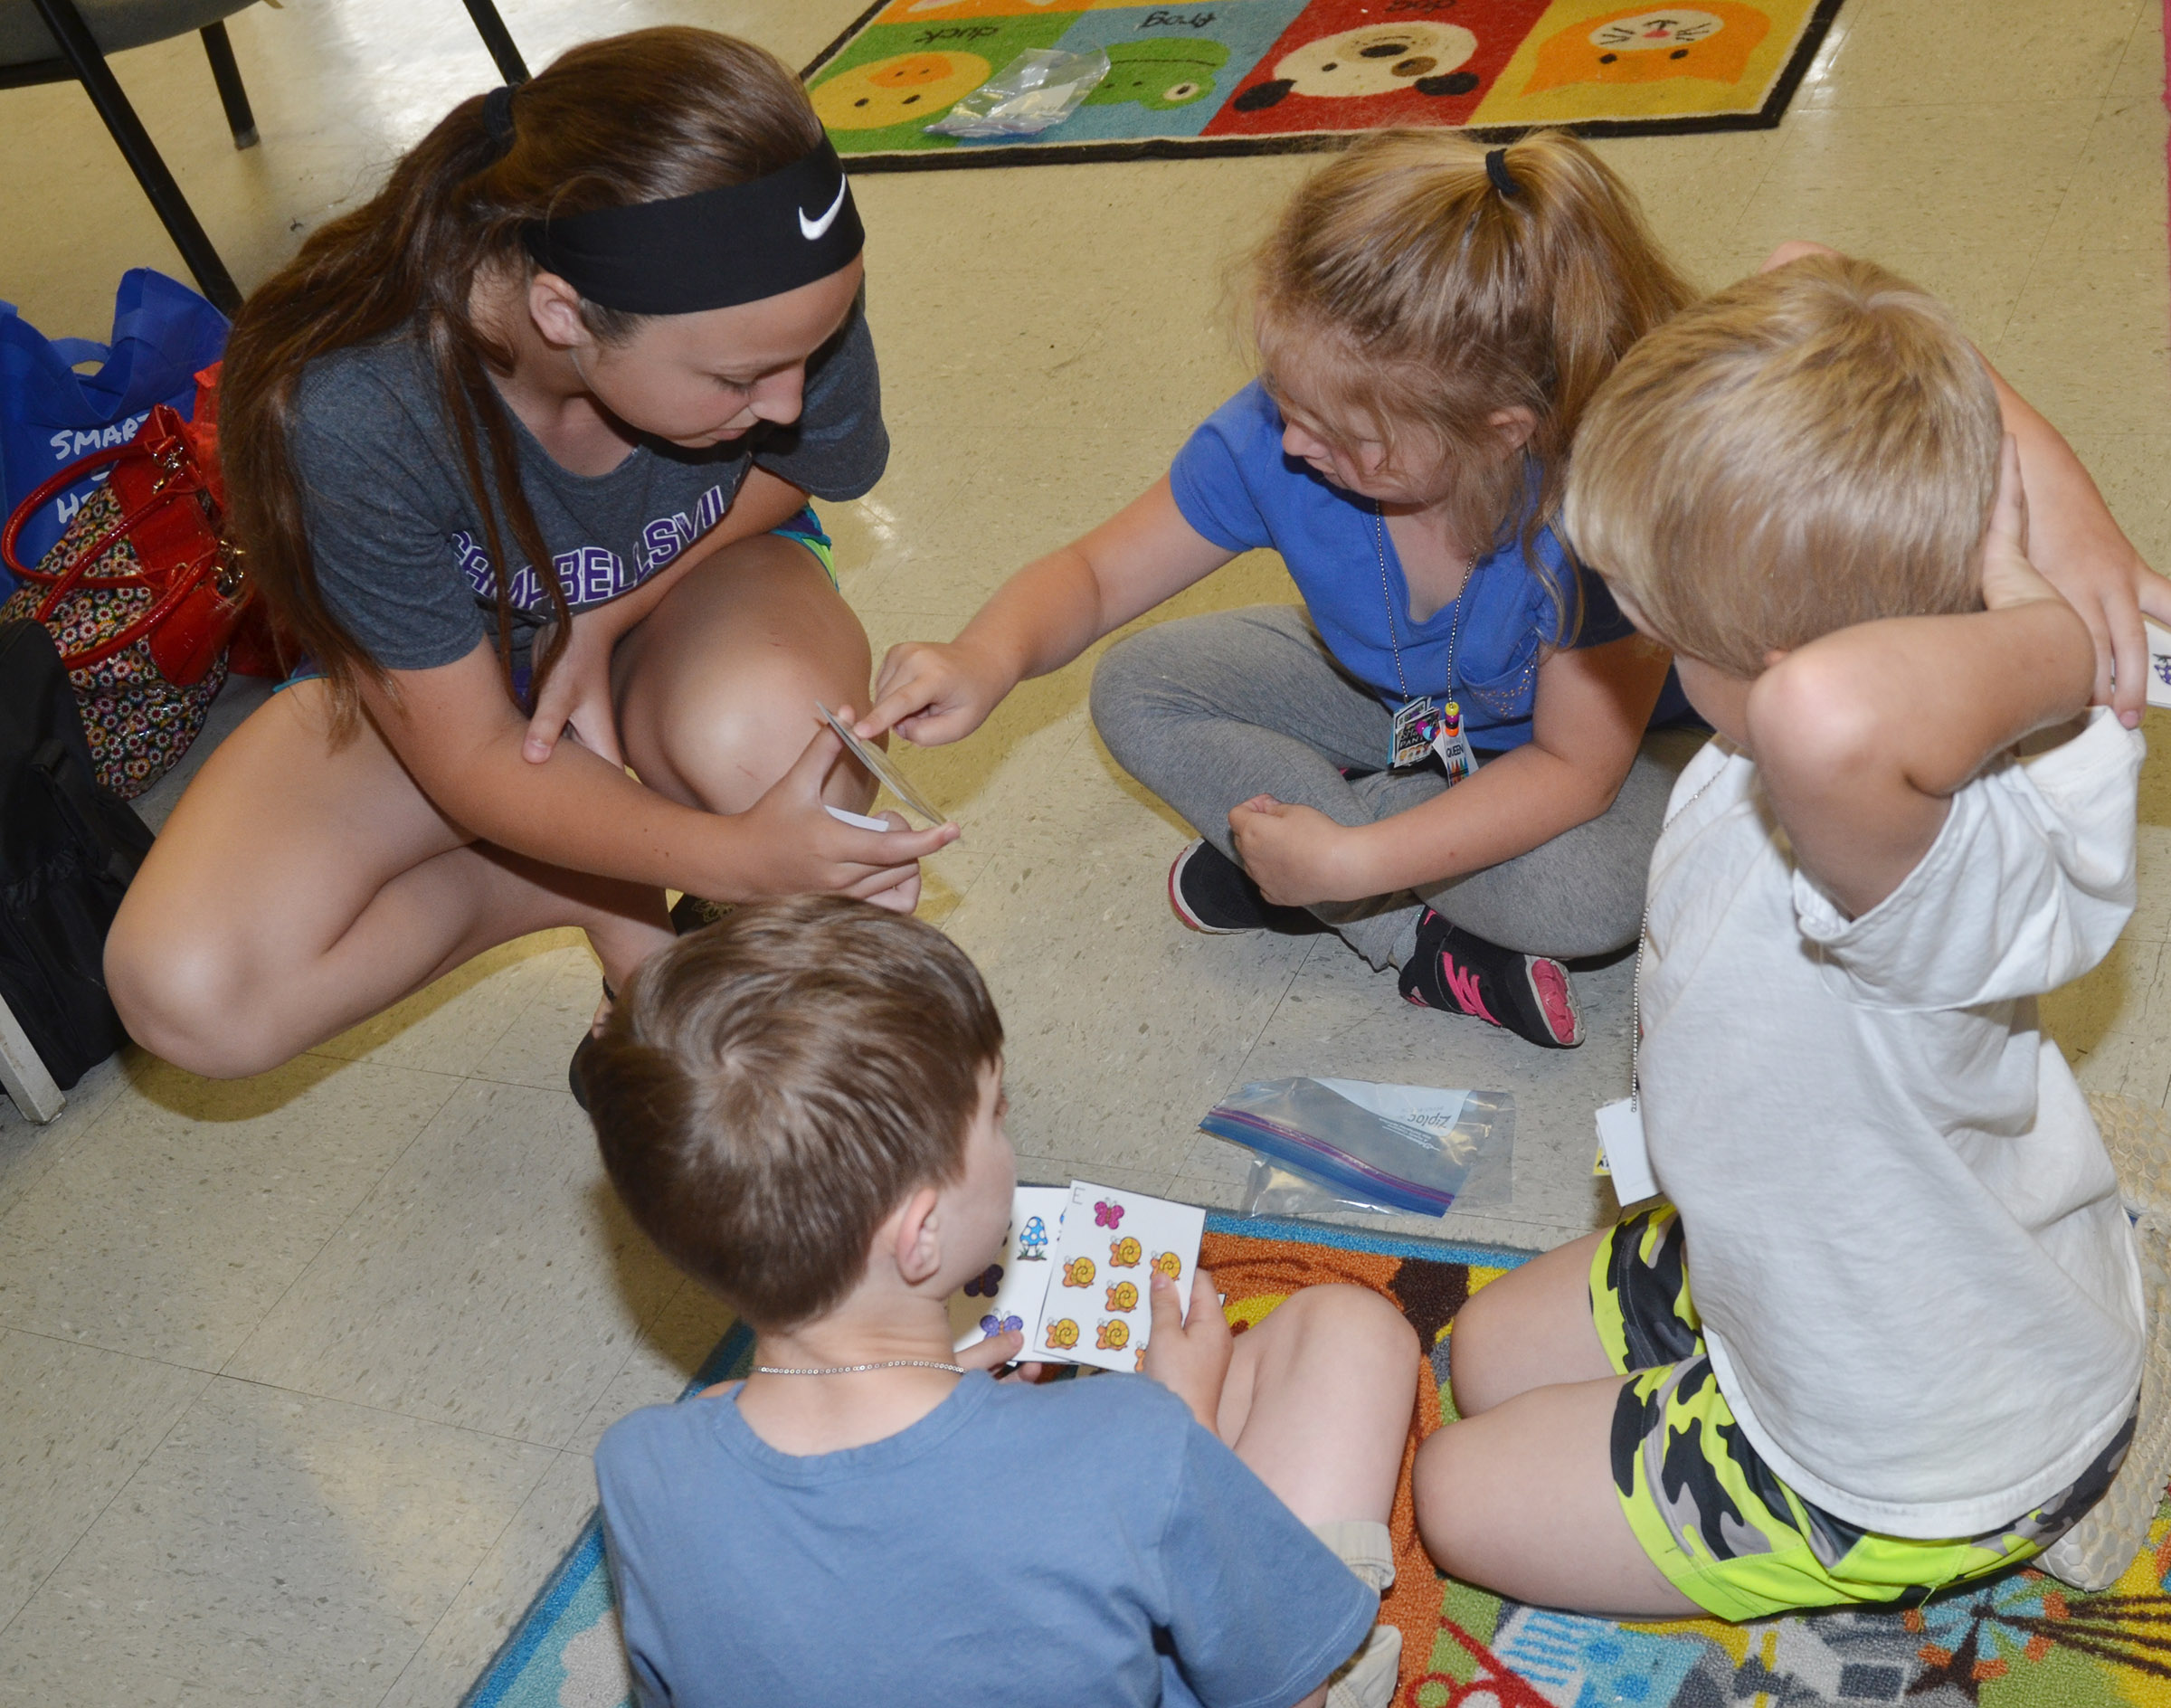 Campbellsville Middle School seventh-grader Lainey Watson, who volunteered to help with the CES Wings Express summer program, helps, from left, kindergarteners Caleb Goodson, Laurna McKenzie and Tristian Harris practice counting.